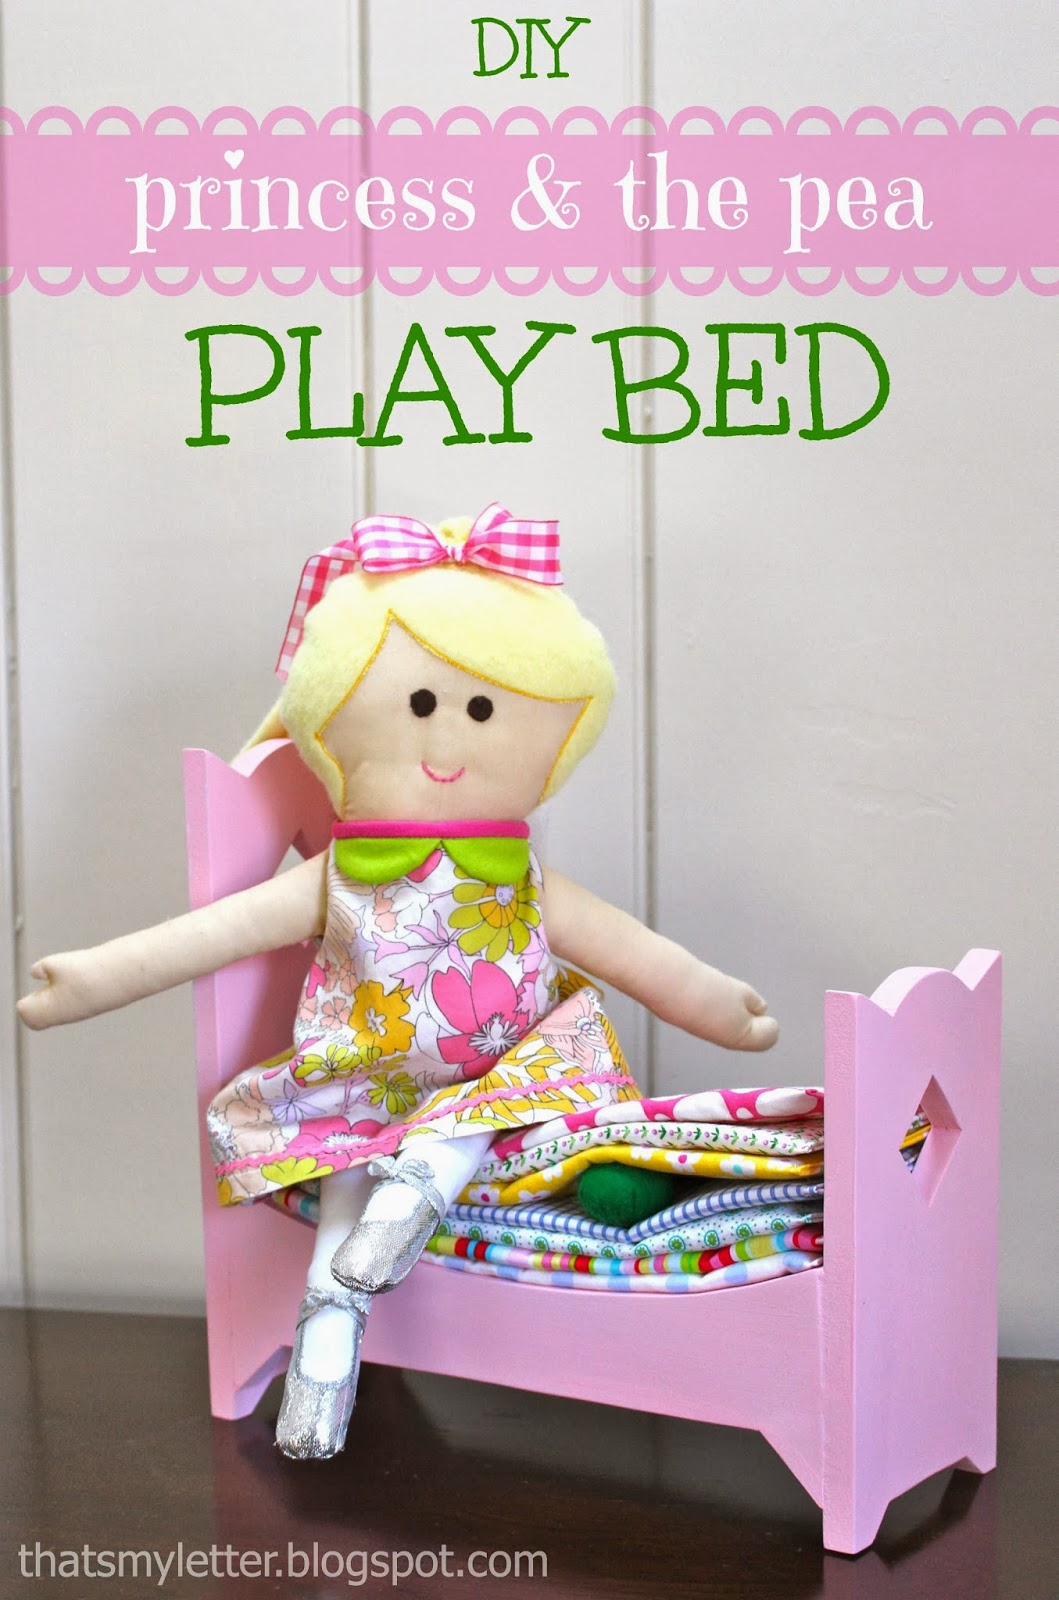 Build A Princess Bed Thats My Letter Diy Princess The Pea Play Bed